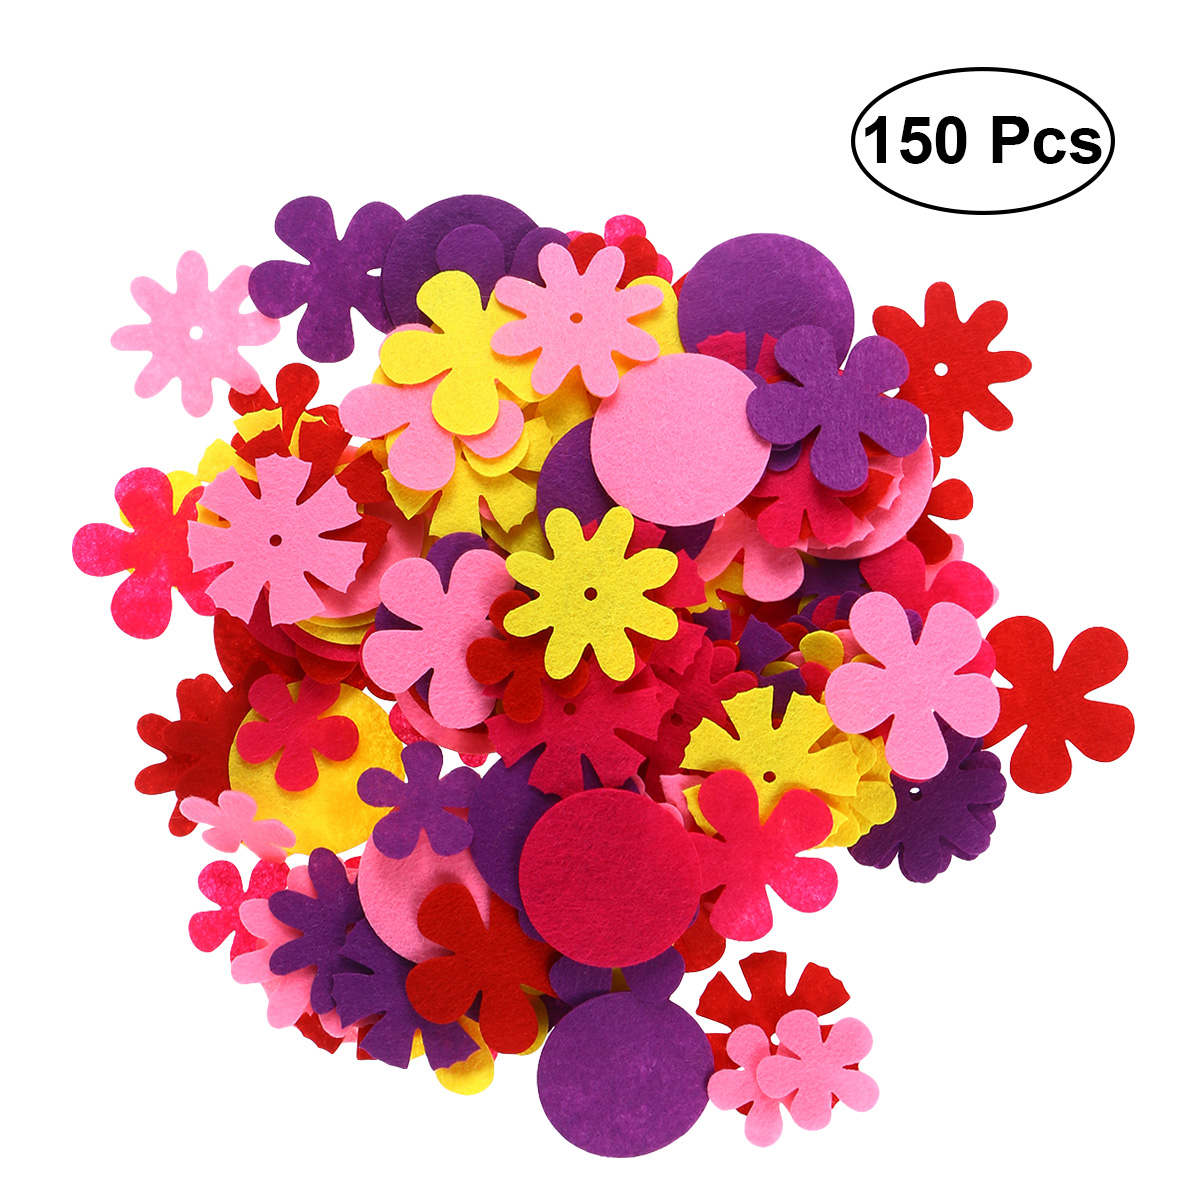 150pcs Felt Colorful Fabric Flower DIY Supplies Ornament For Invitation Cards Home Decor Handcraft Adults Children